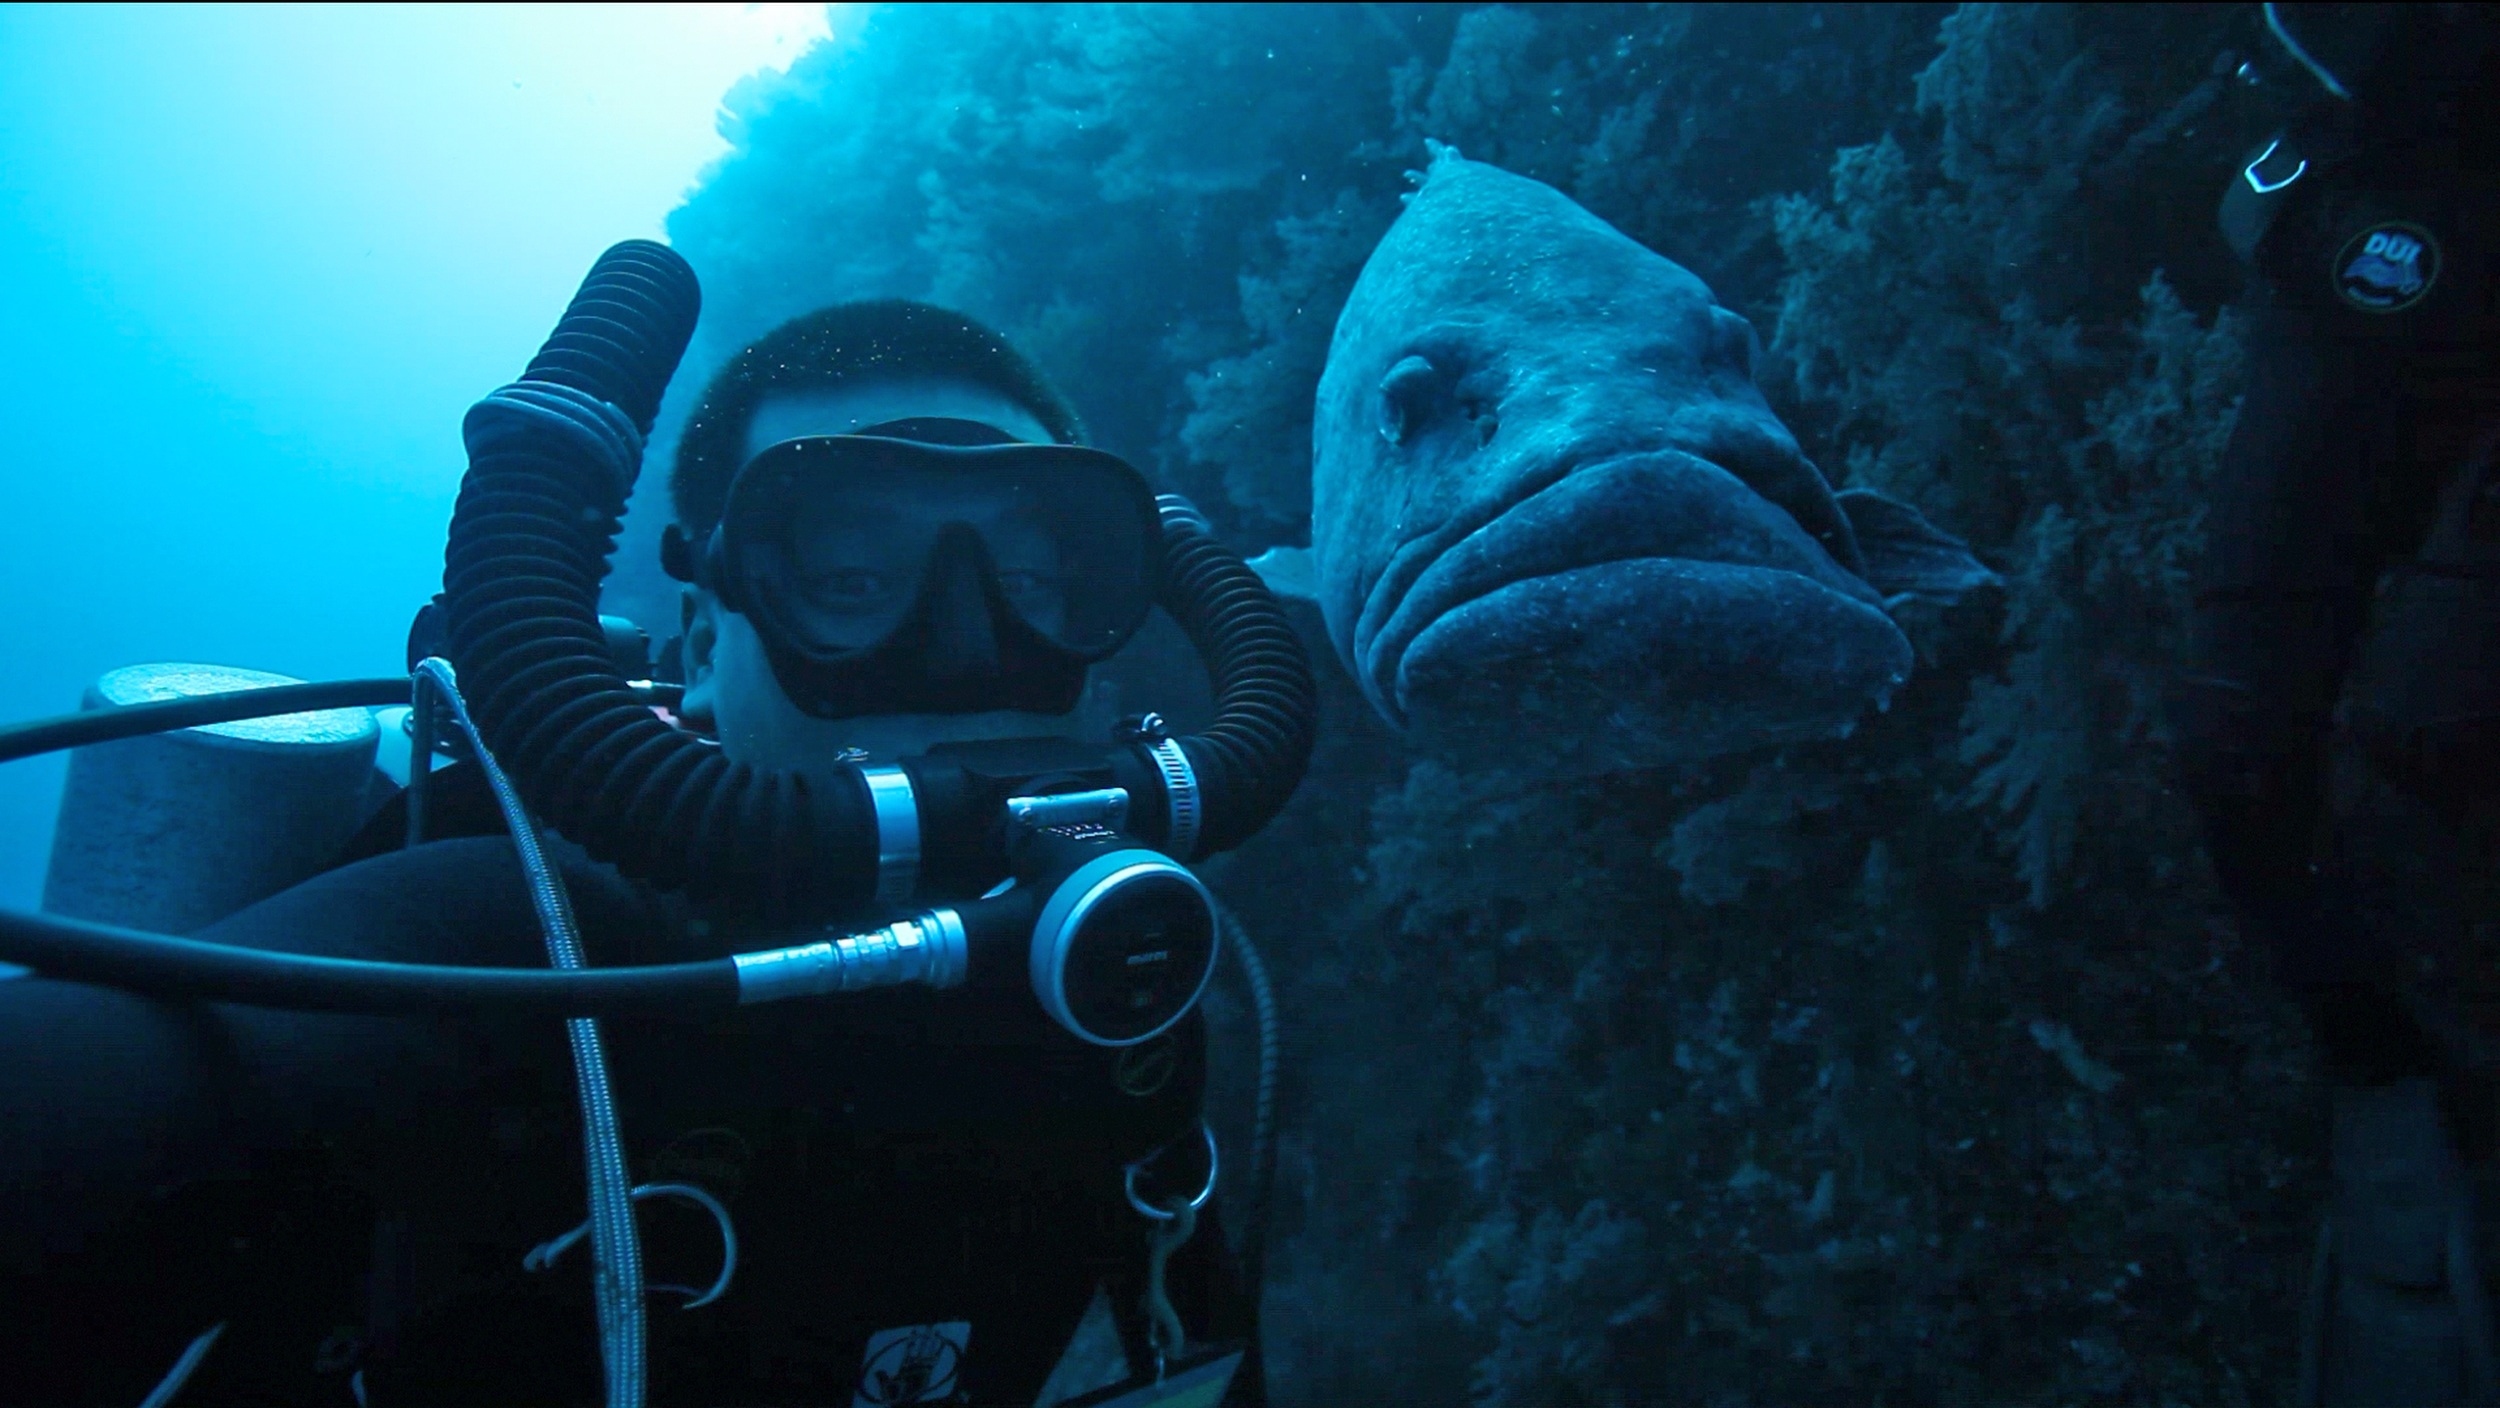 eric with grouper-brighter.JPG